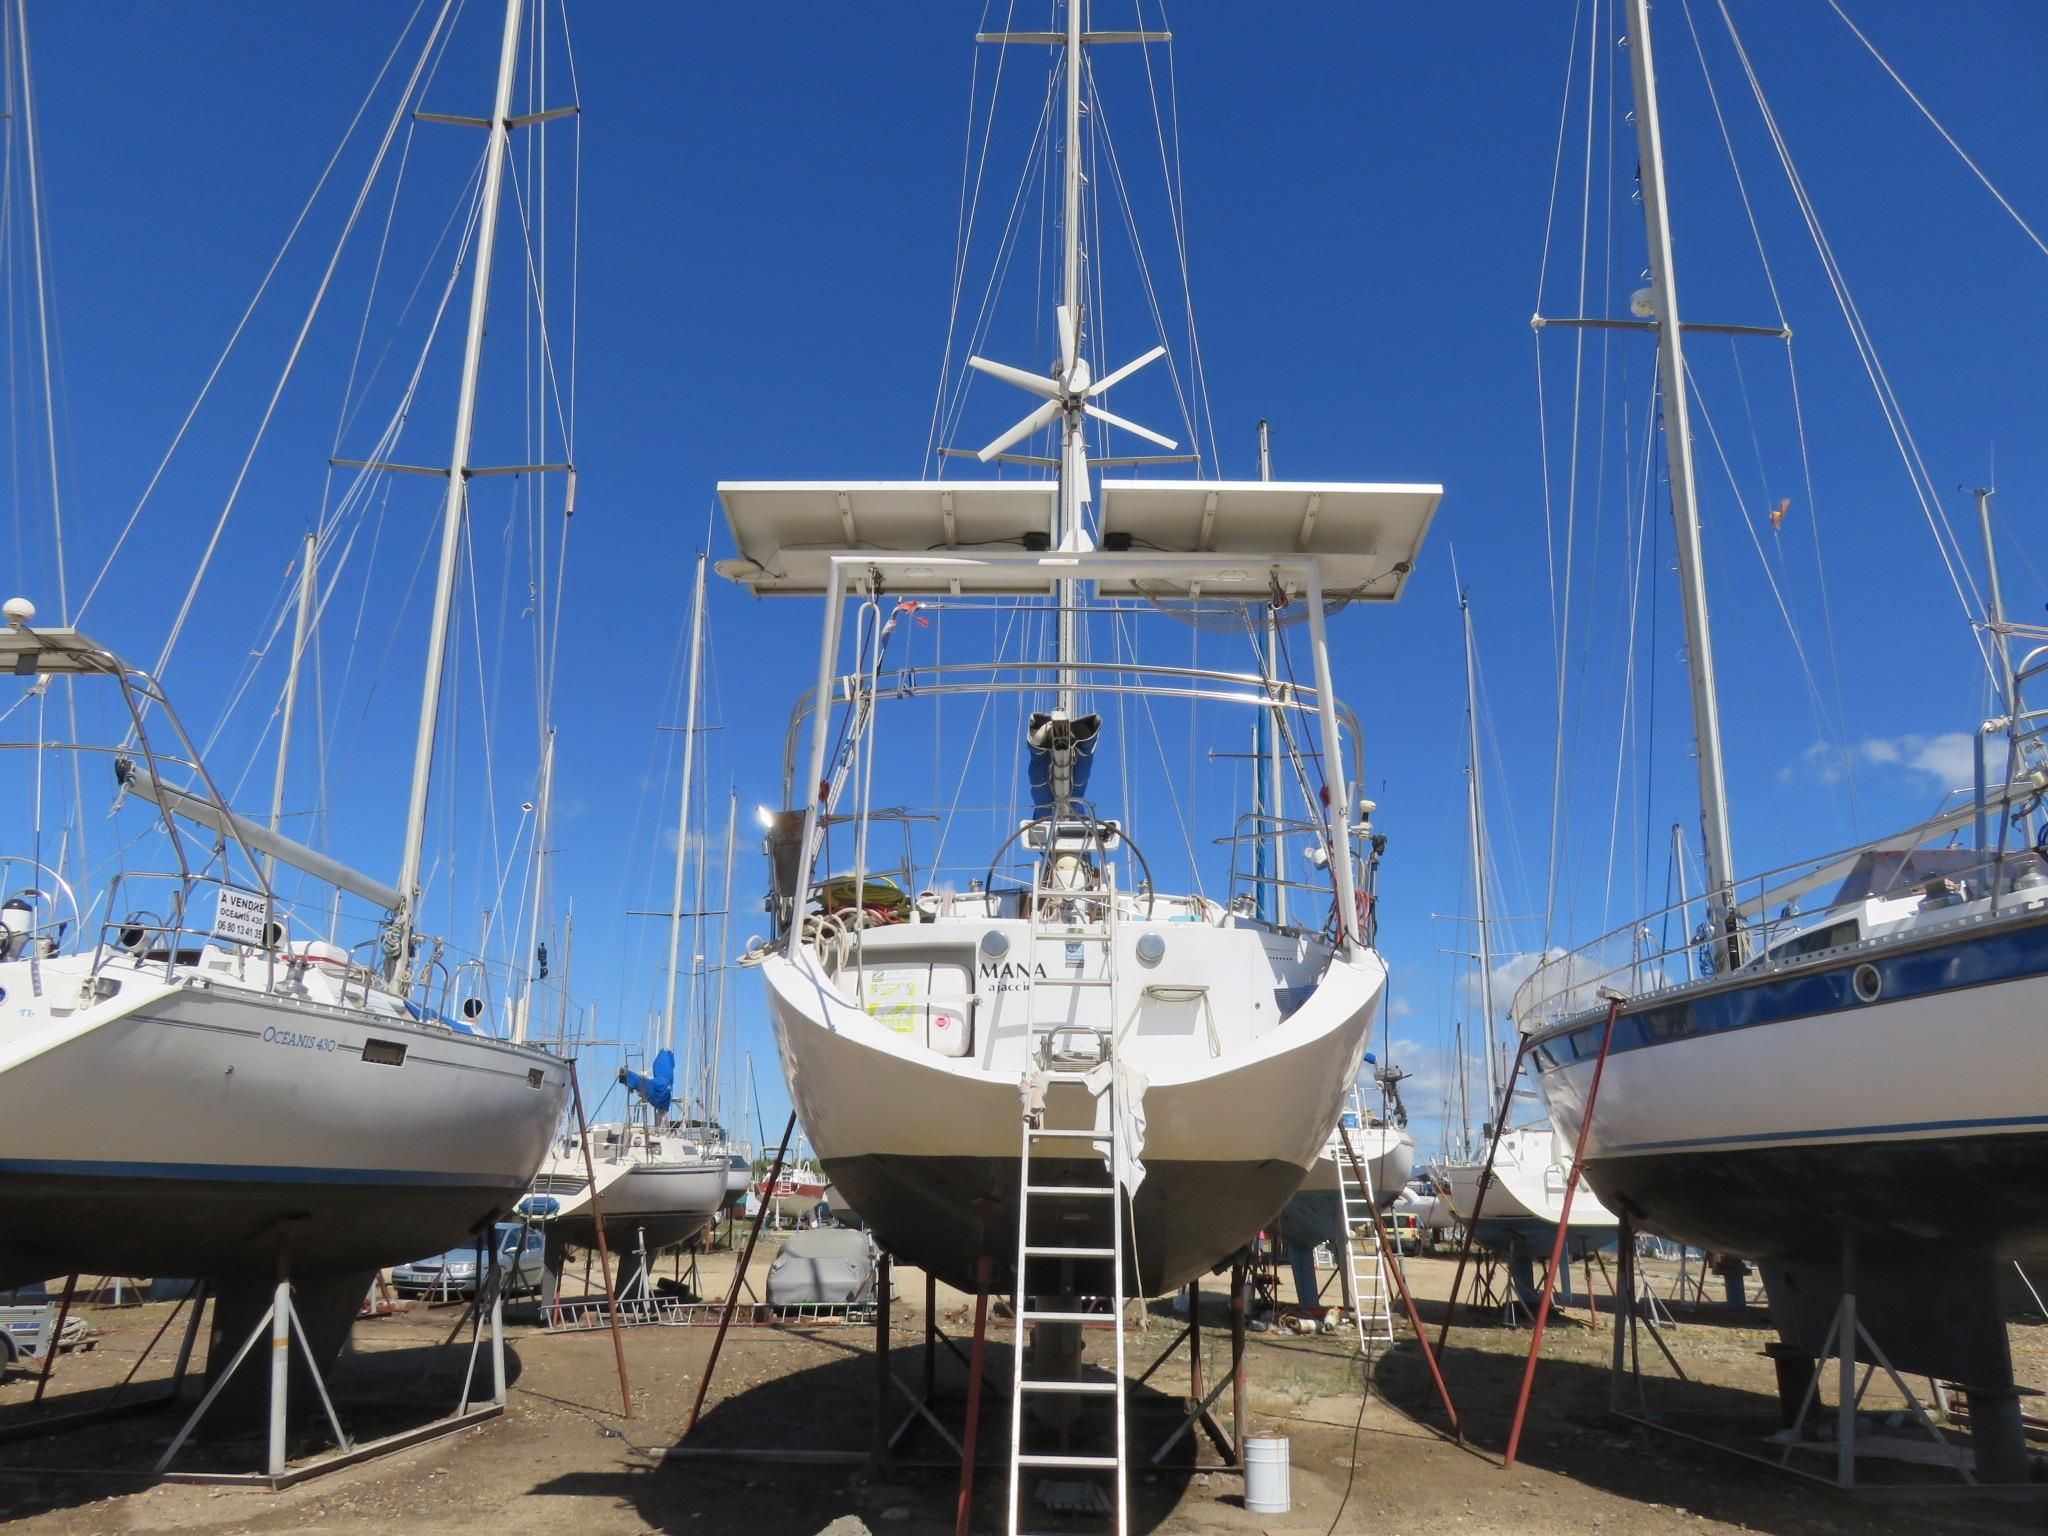 1993 dujardin atlantis 430 sail boat for sale www for Dujardin services